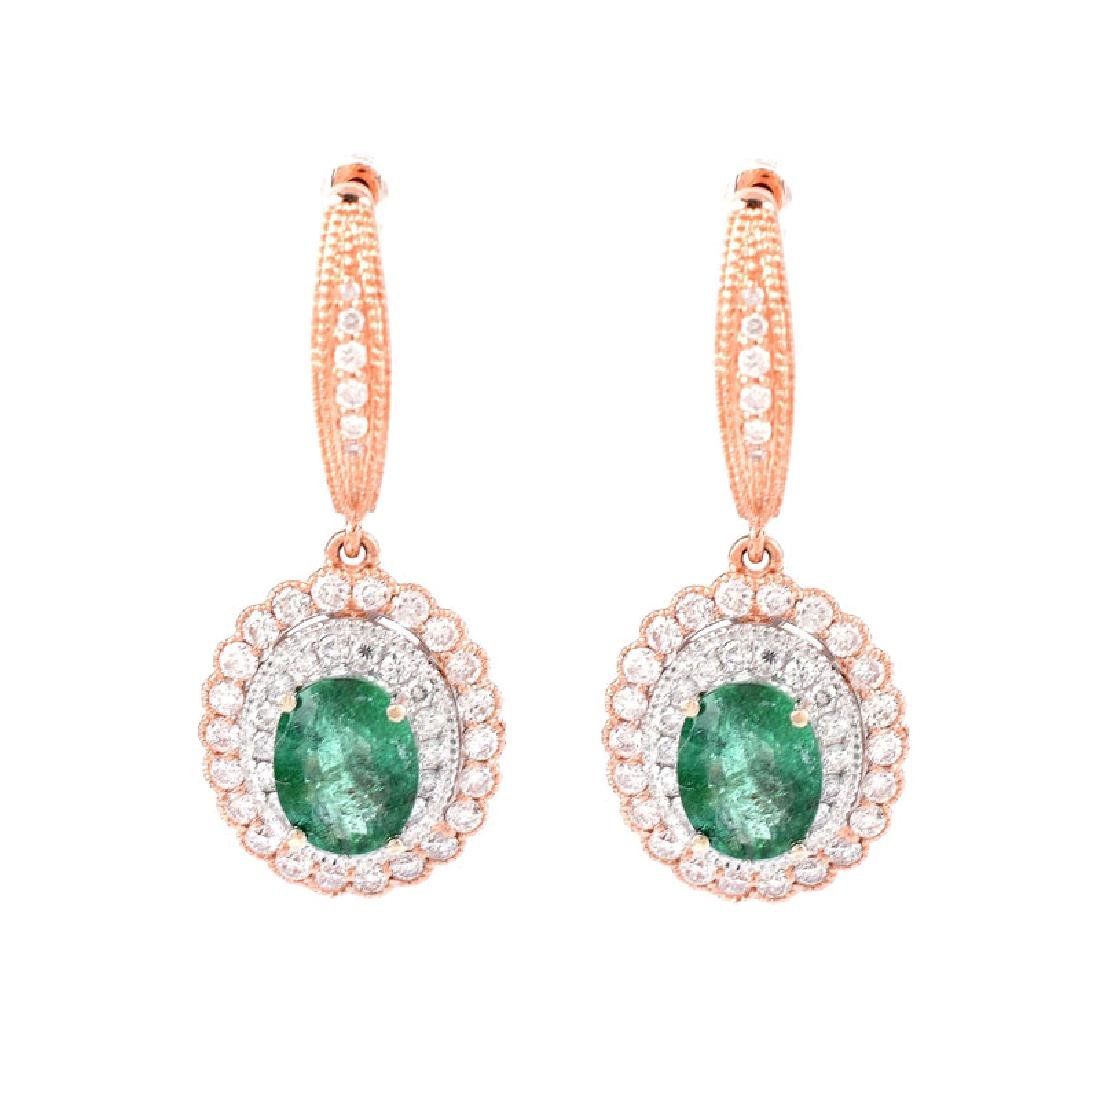 Pair of Oval Cut Colombian Emerald, Round Brilliant Cut